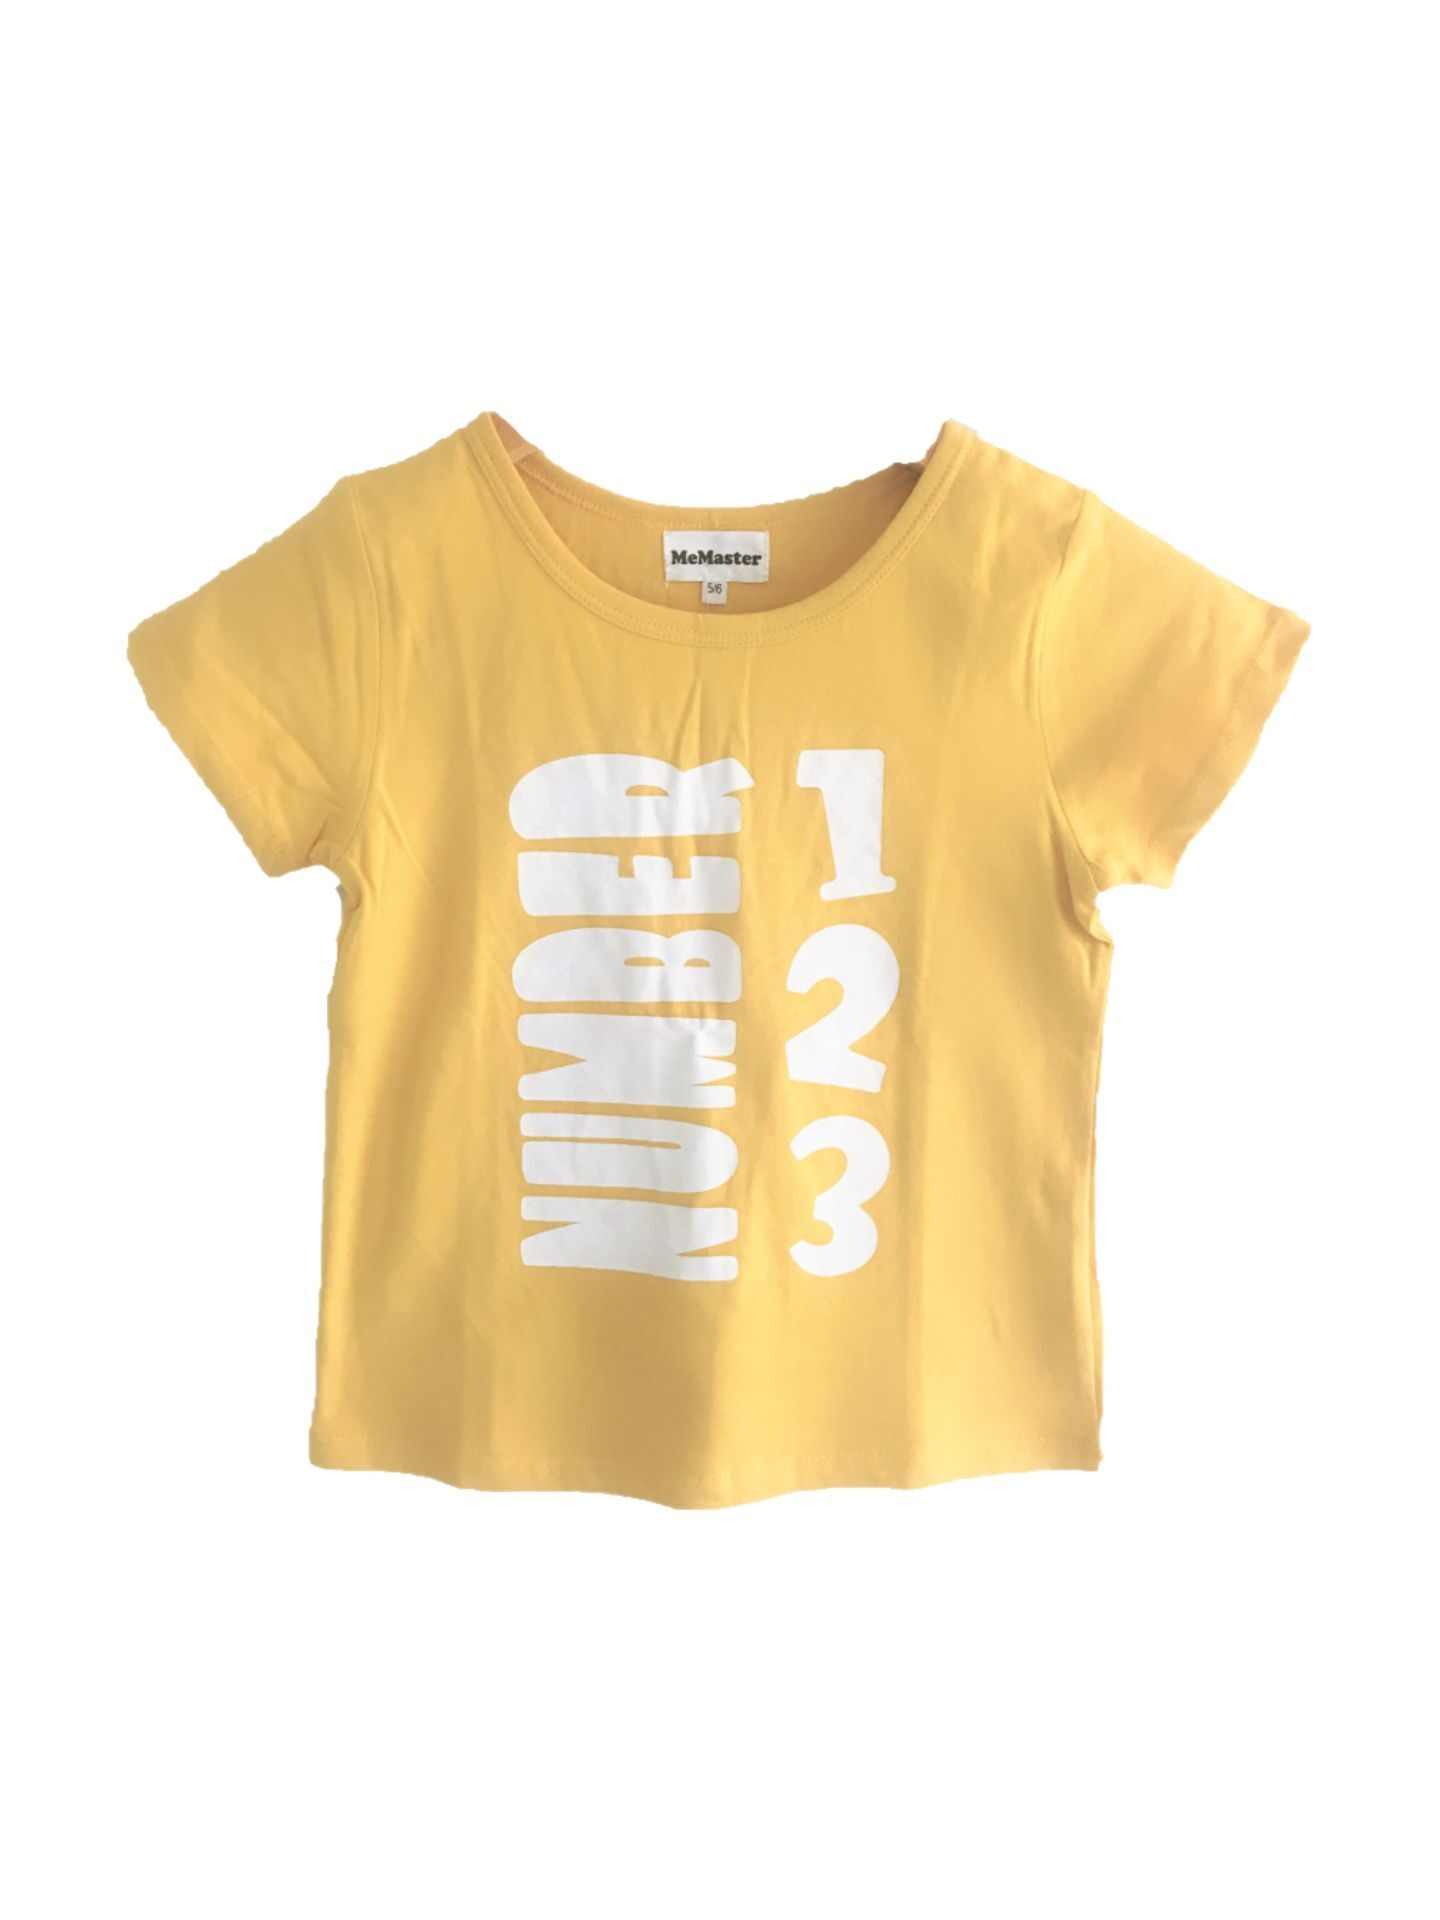 183003 boys short sleeve tee - yellow